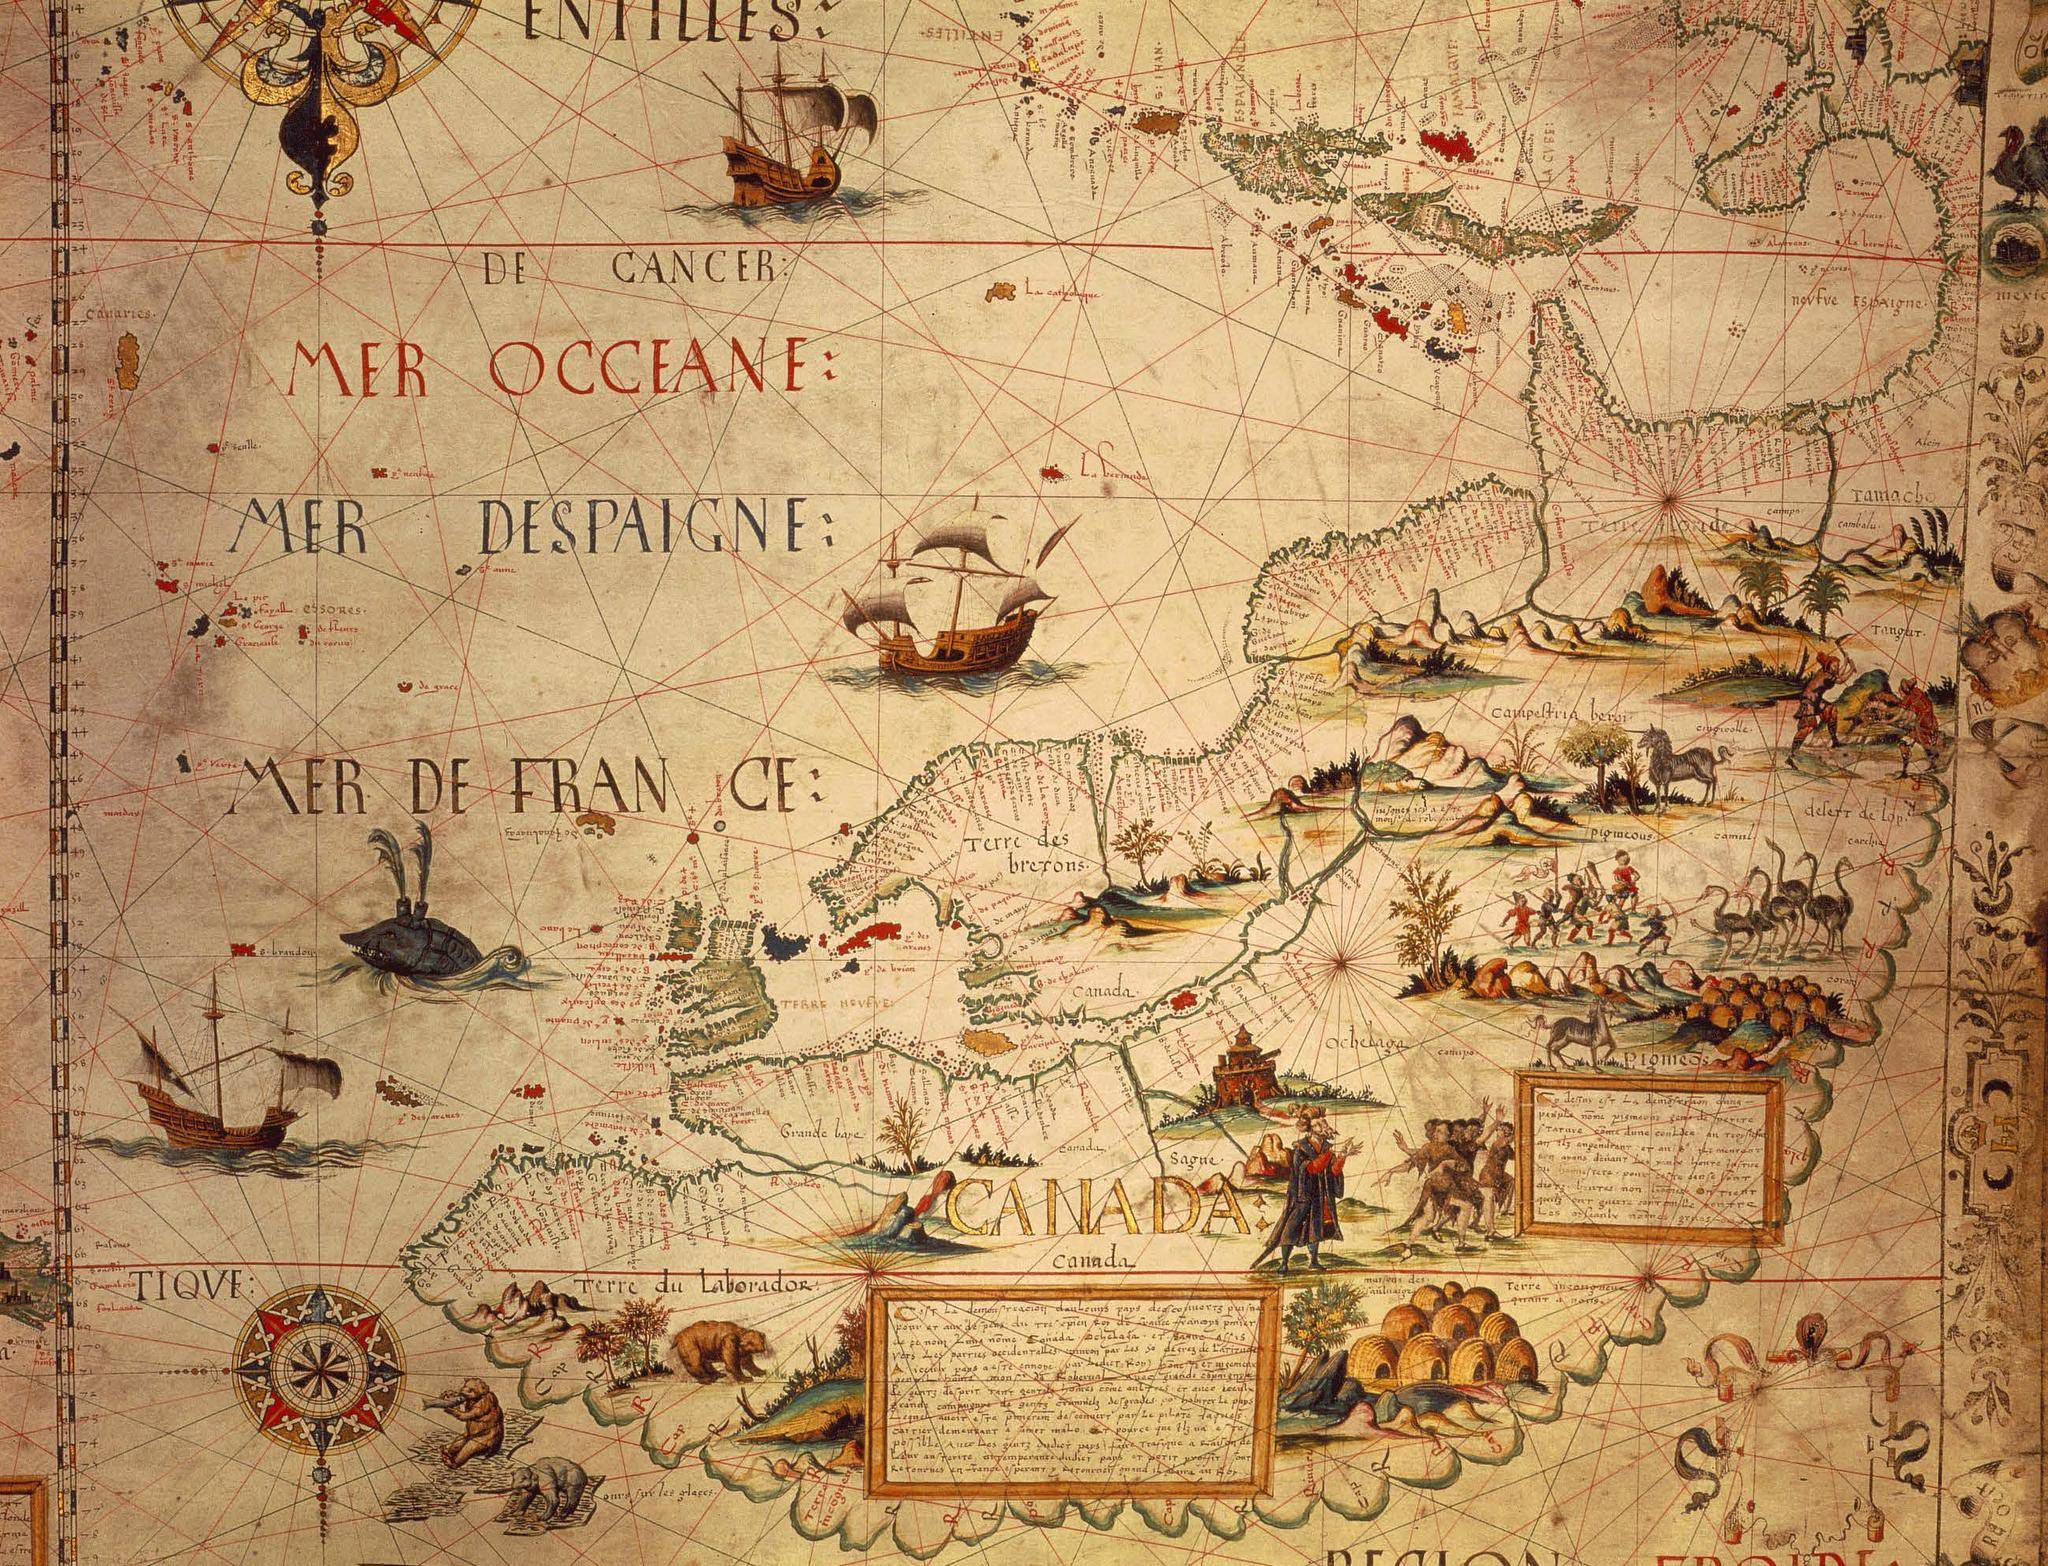 Review Perils Of Reading History >> Review Adams Shoalts S A History Of Canada In Ten Maps And